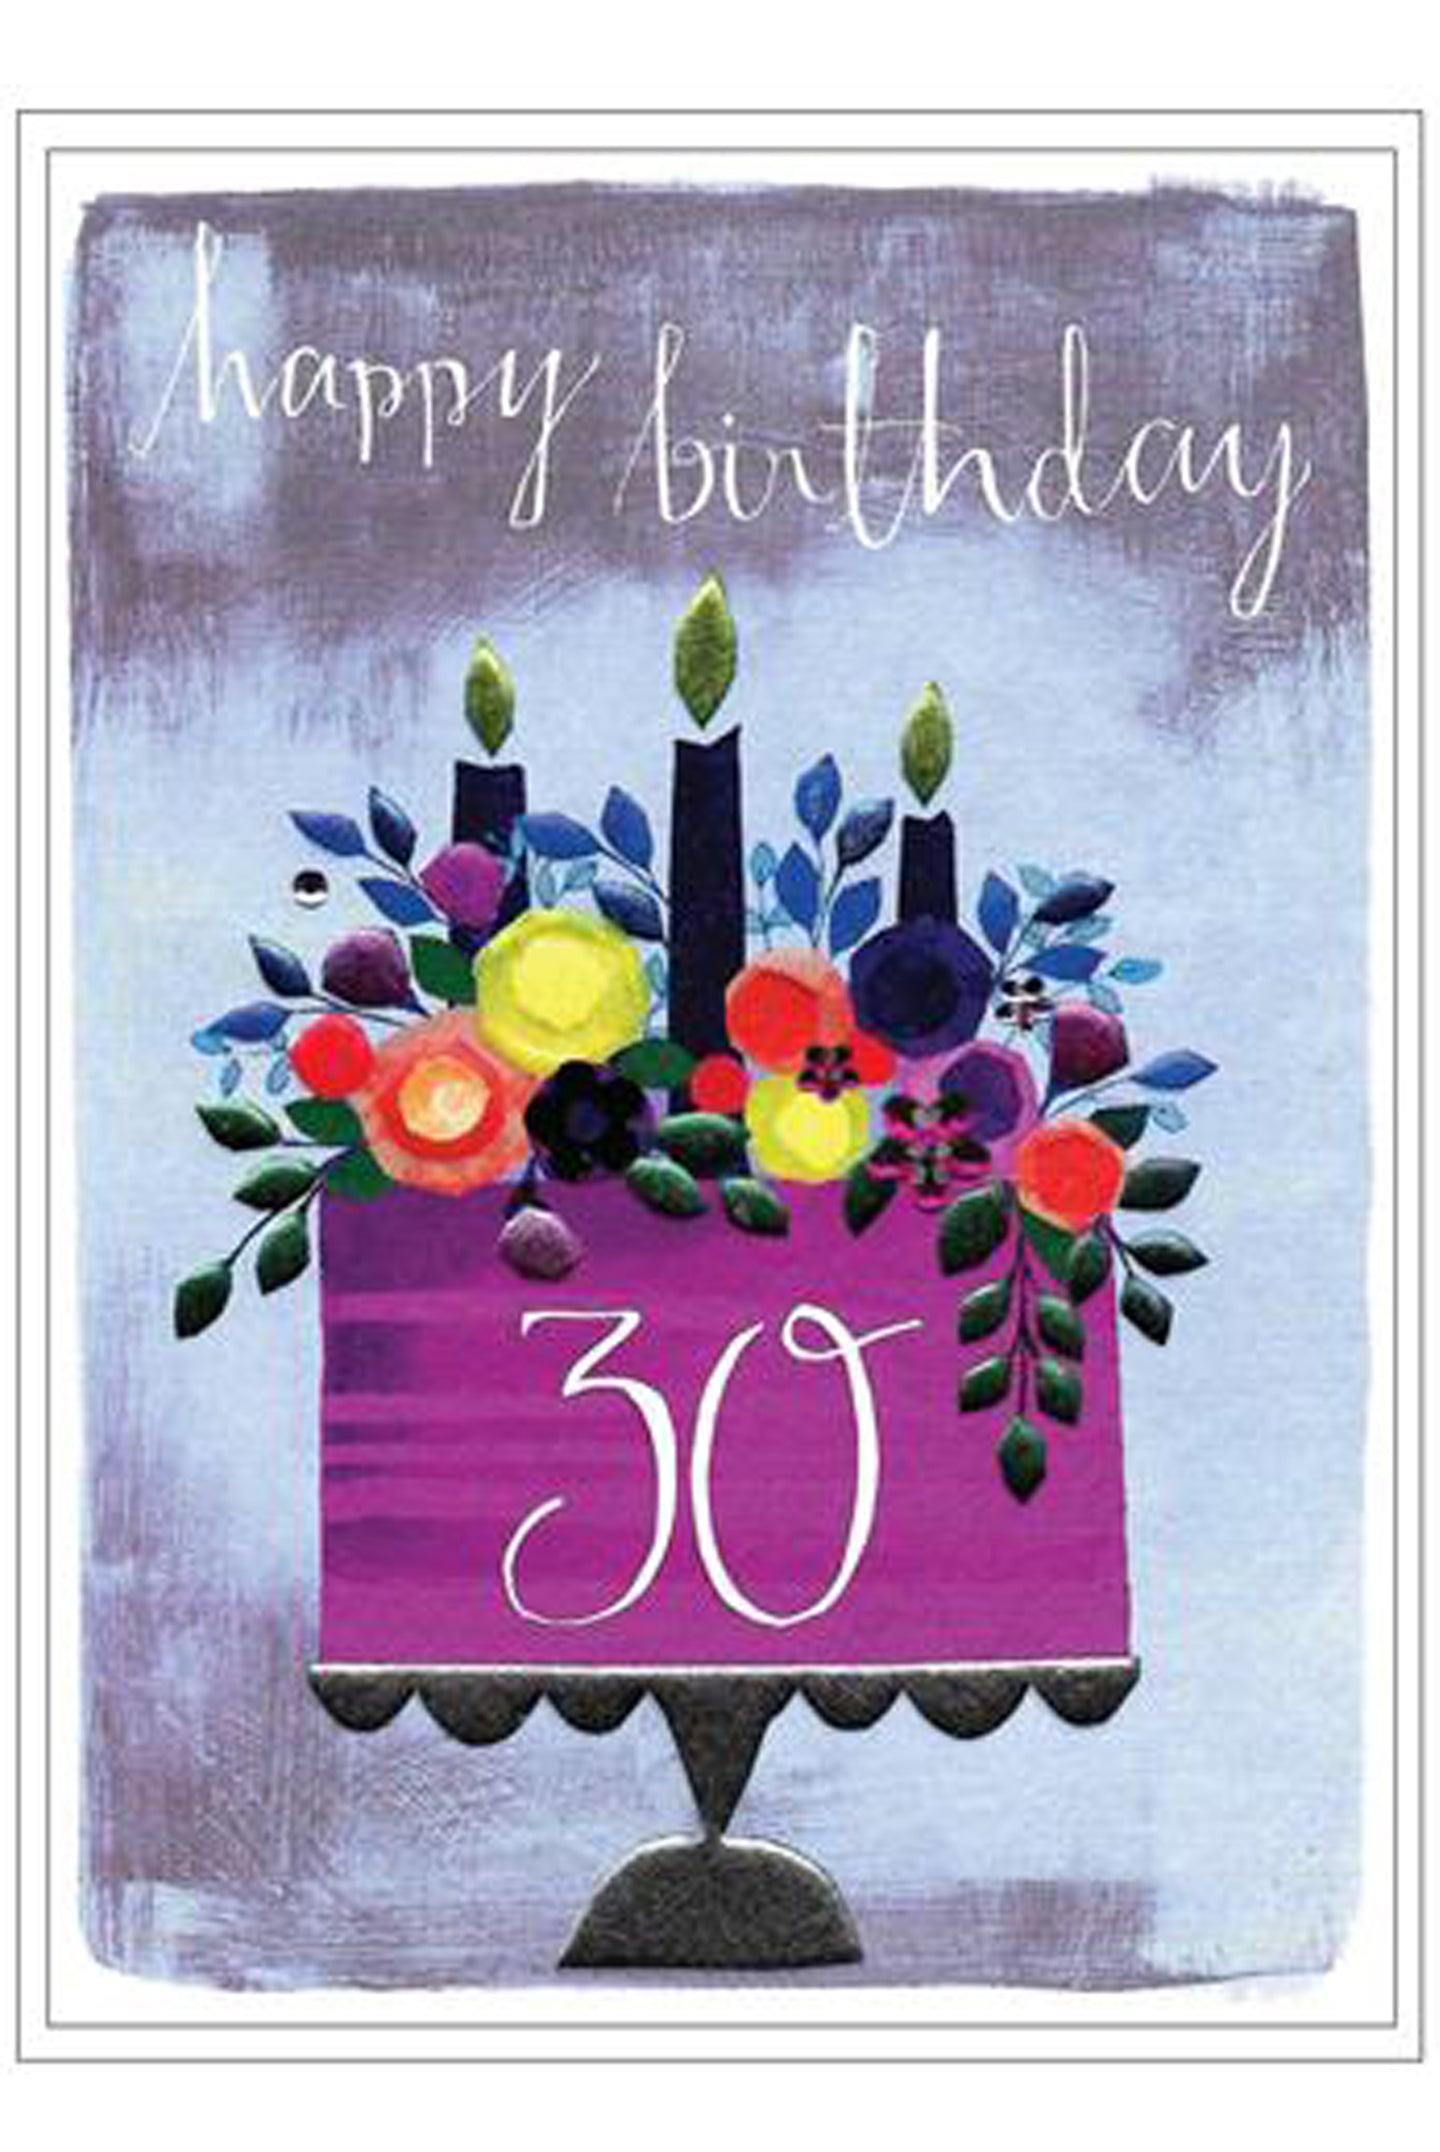 CA Claire Picard 30th Birthday Card